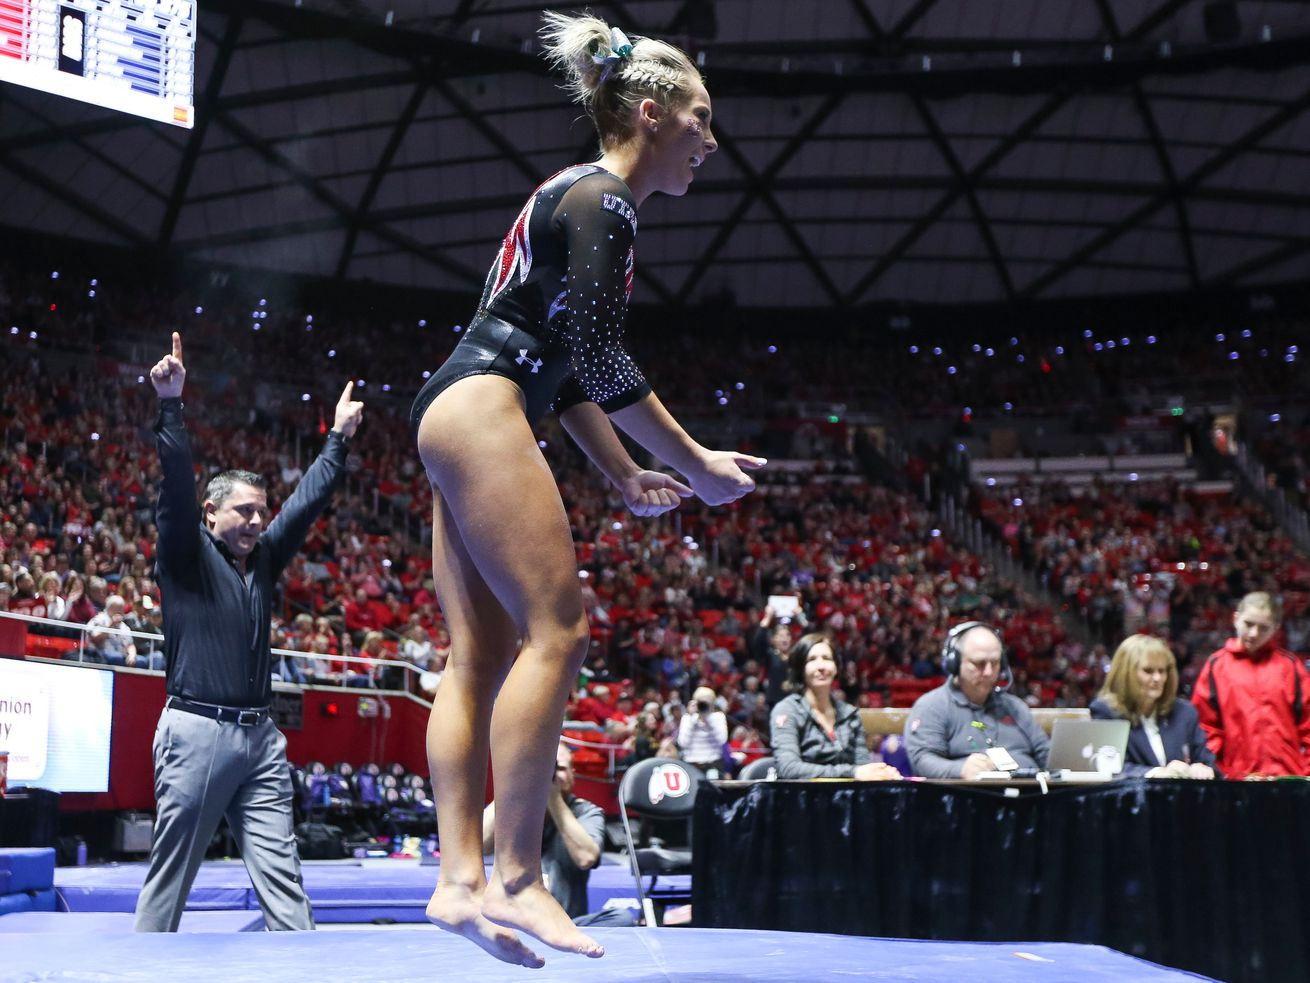 'I definitely do want to win a national championship': MyKayla Skinner excited about the future of Utah gymnastics